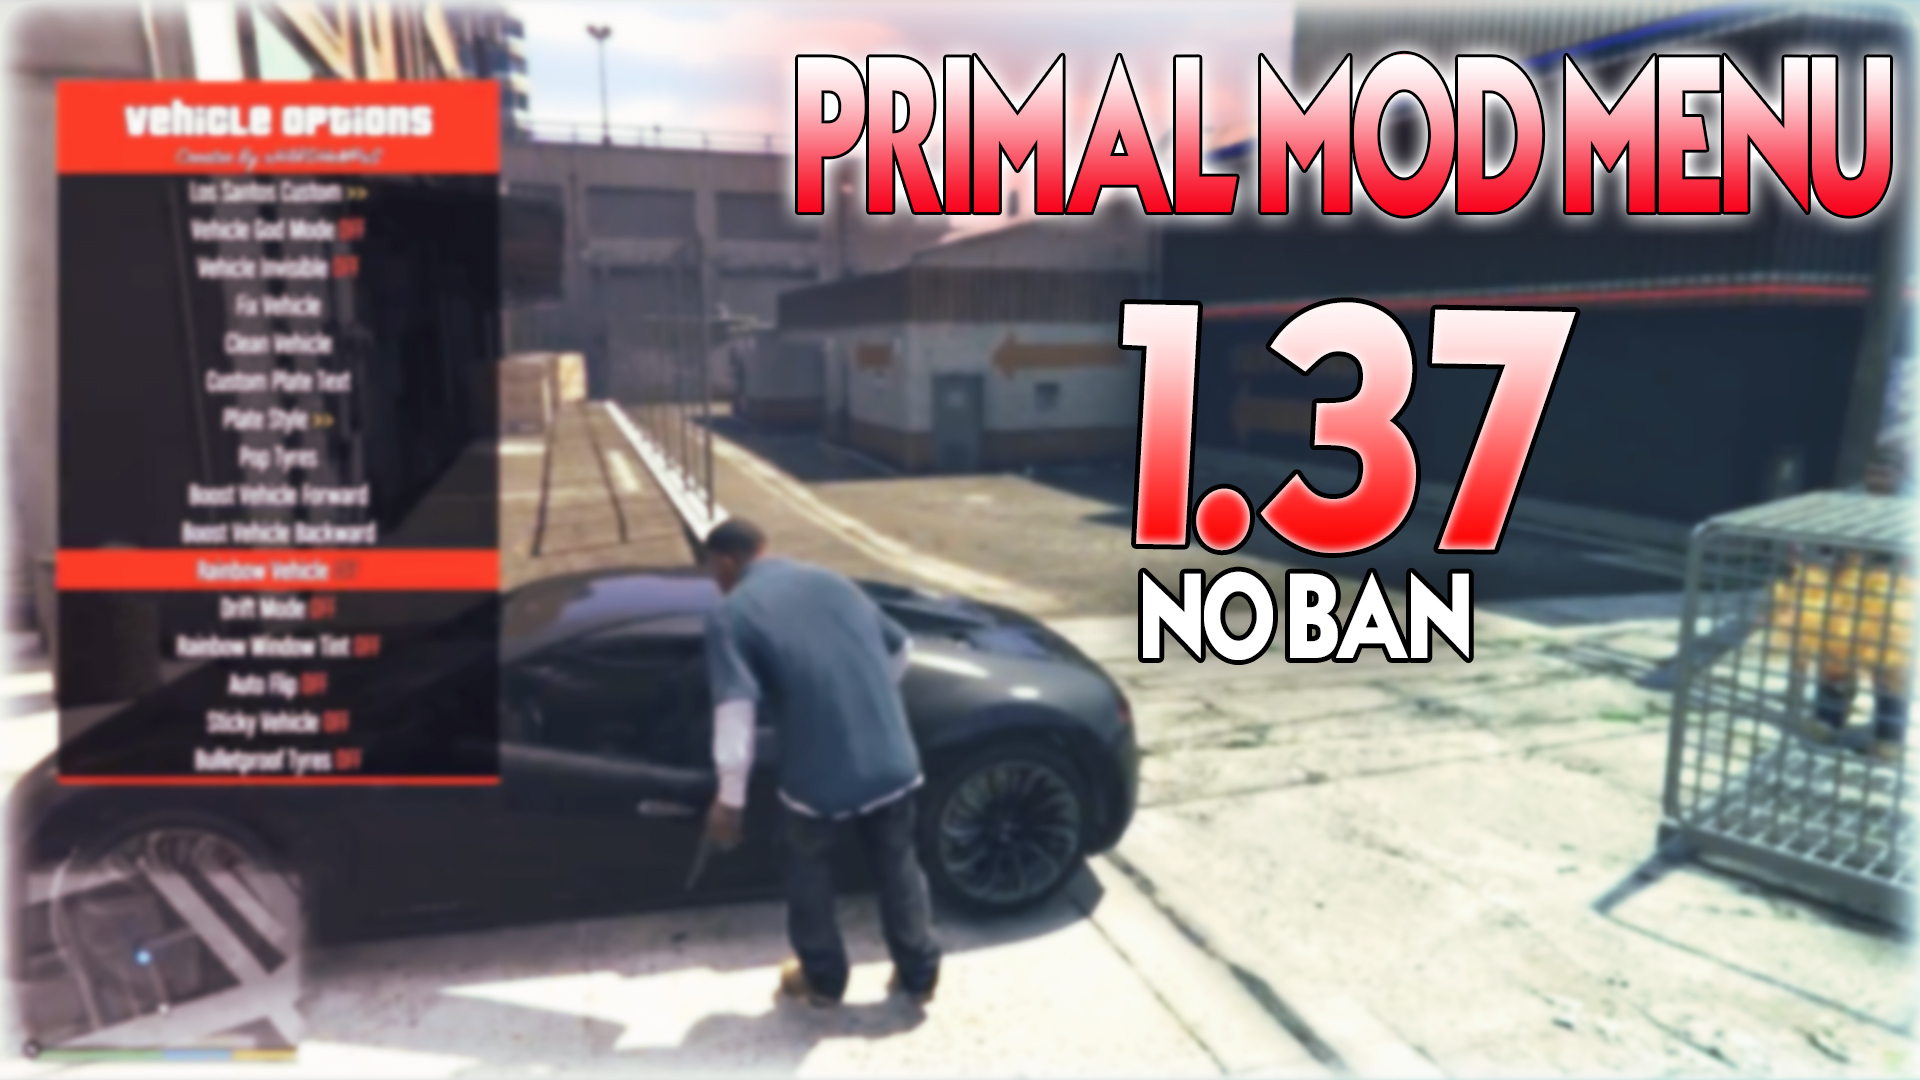 GTA 5 ONLINE UNDETECTABLE MOD MENU 1 37 INFAMOUS by DenchModz Free on ToneDen